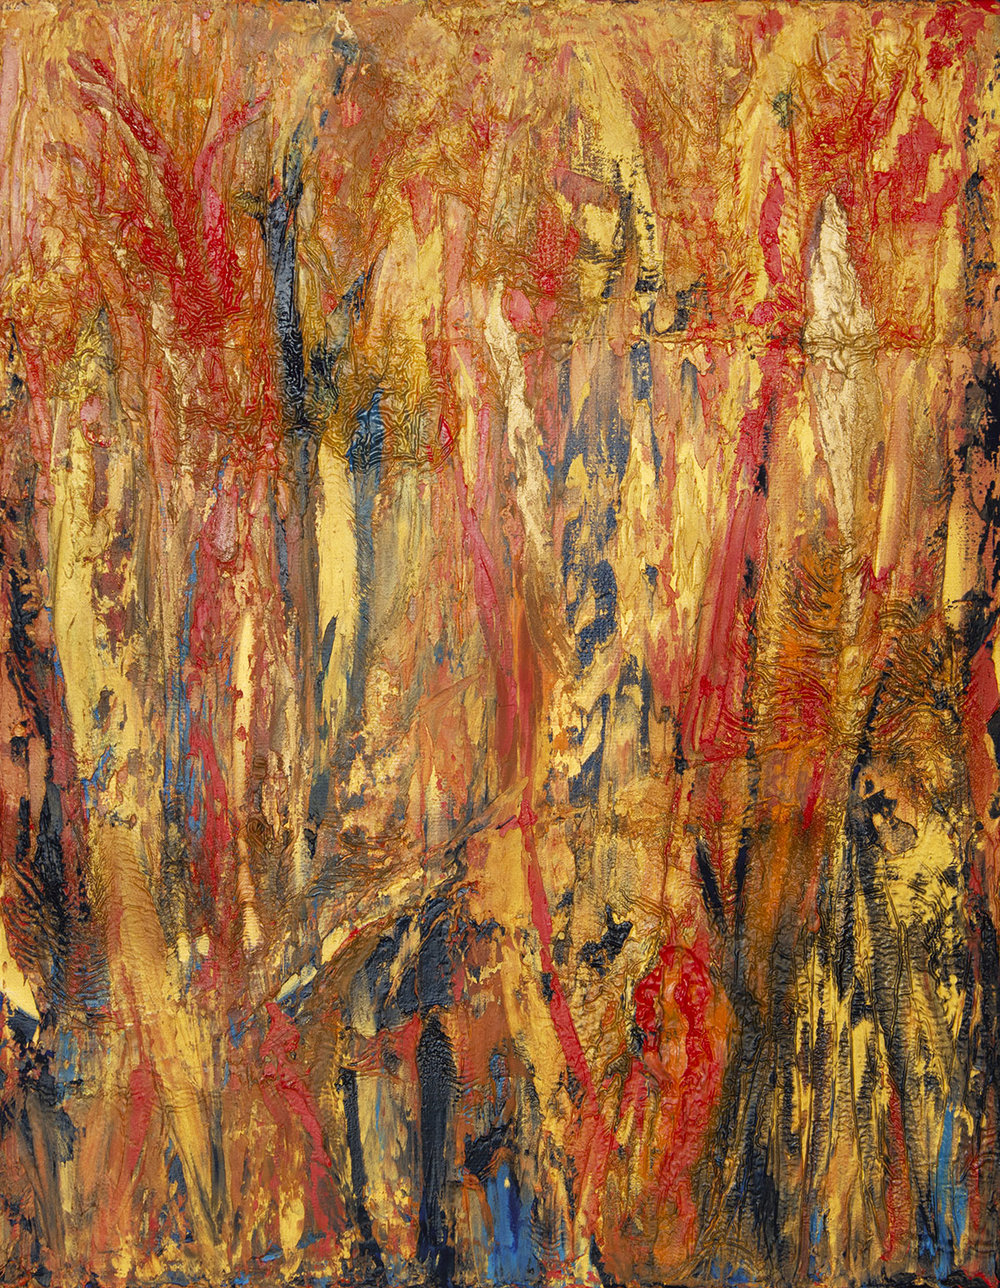 Fire Coral 2, 2012